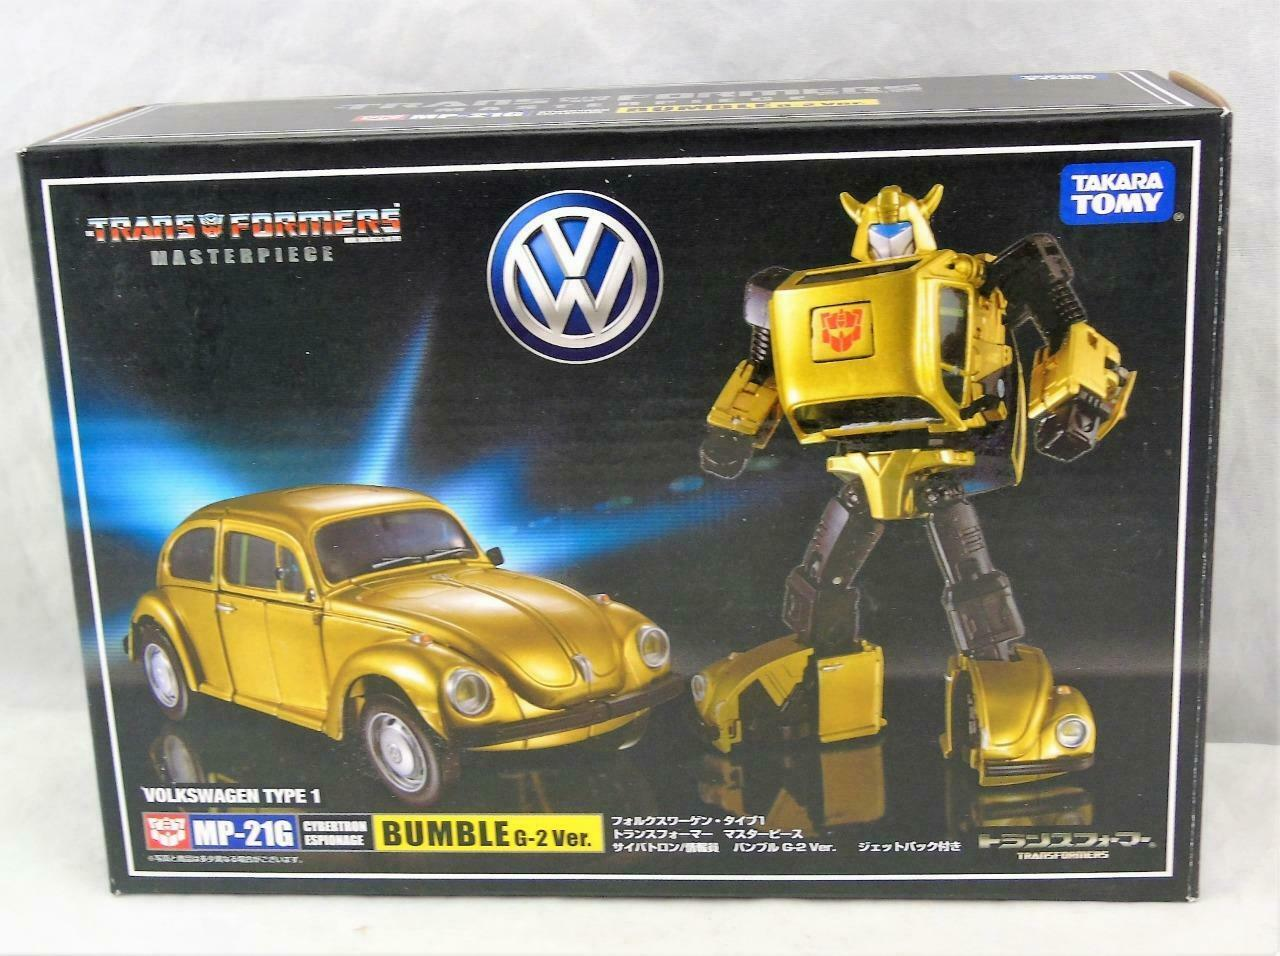 Transformers Masterpiece Takara MP21G Bumblebee completo di scatola